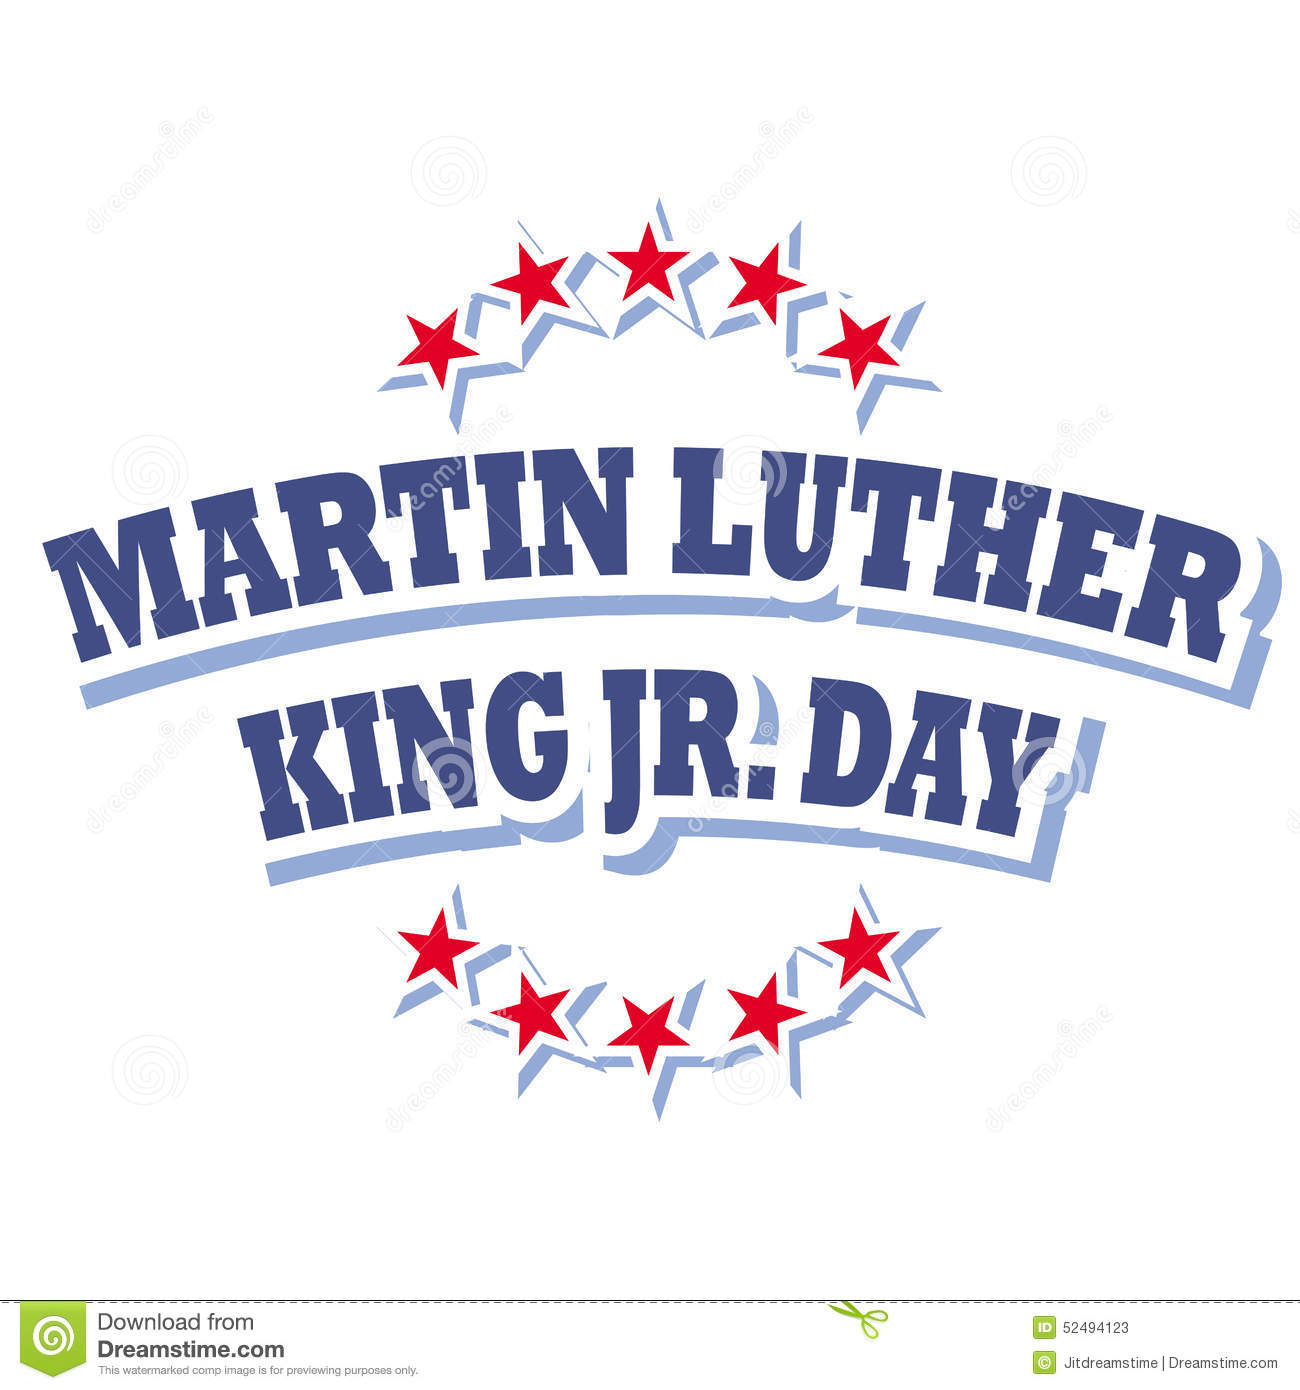 clip art martin luther king jr day - photo #2